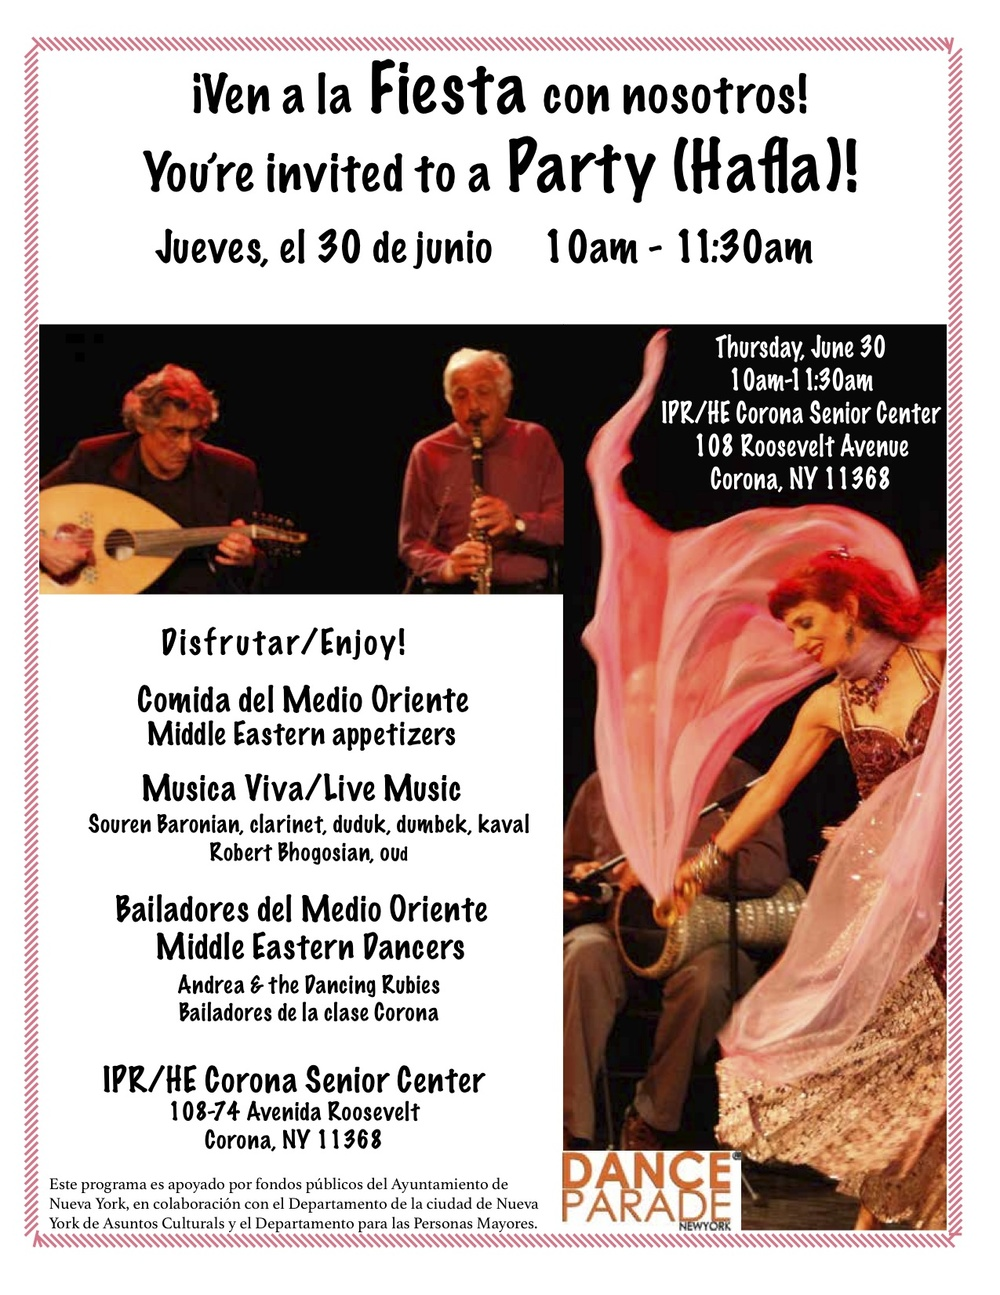 Artist in Residence, Andrea Beeman, will present Hafla! a program of traditional Middle Eastern music and Bellydance in collaboration with the senior students of IPR/HE Corona Senior Center and Dance Parade NYC, Part of New York City's SU-CASA Creative Aging Program.